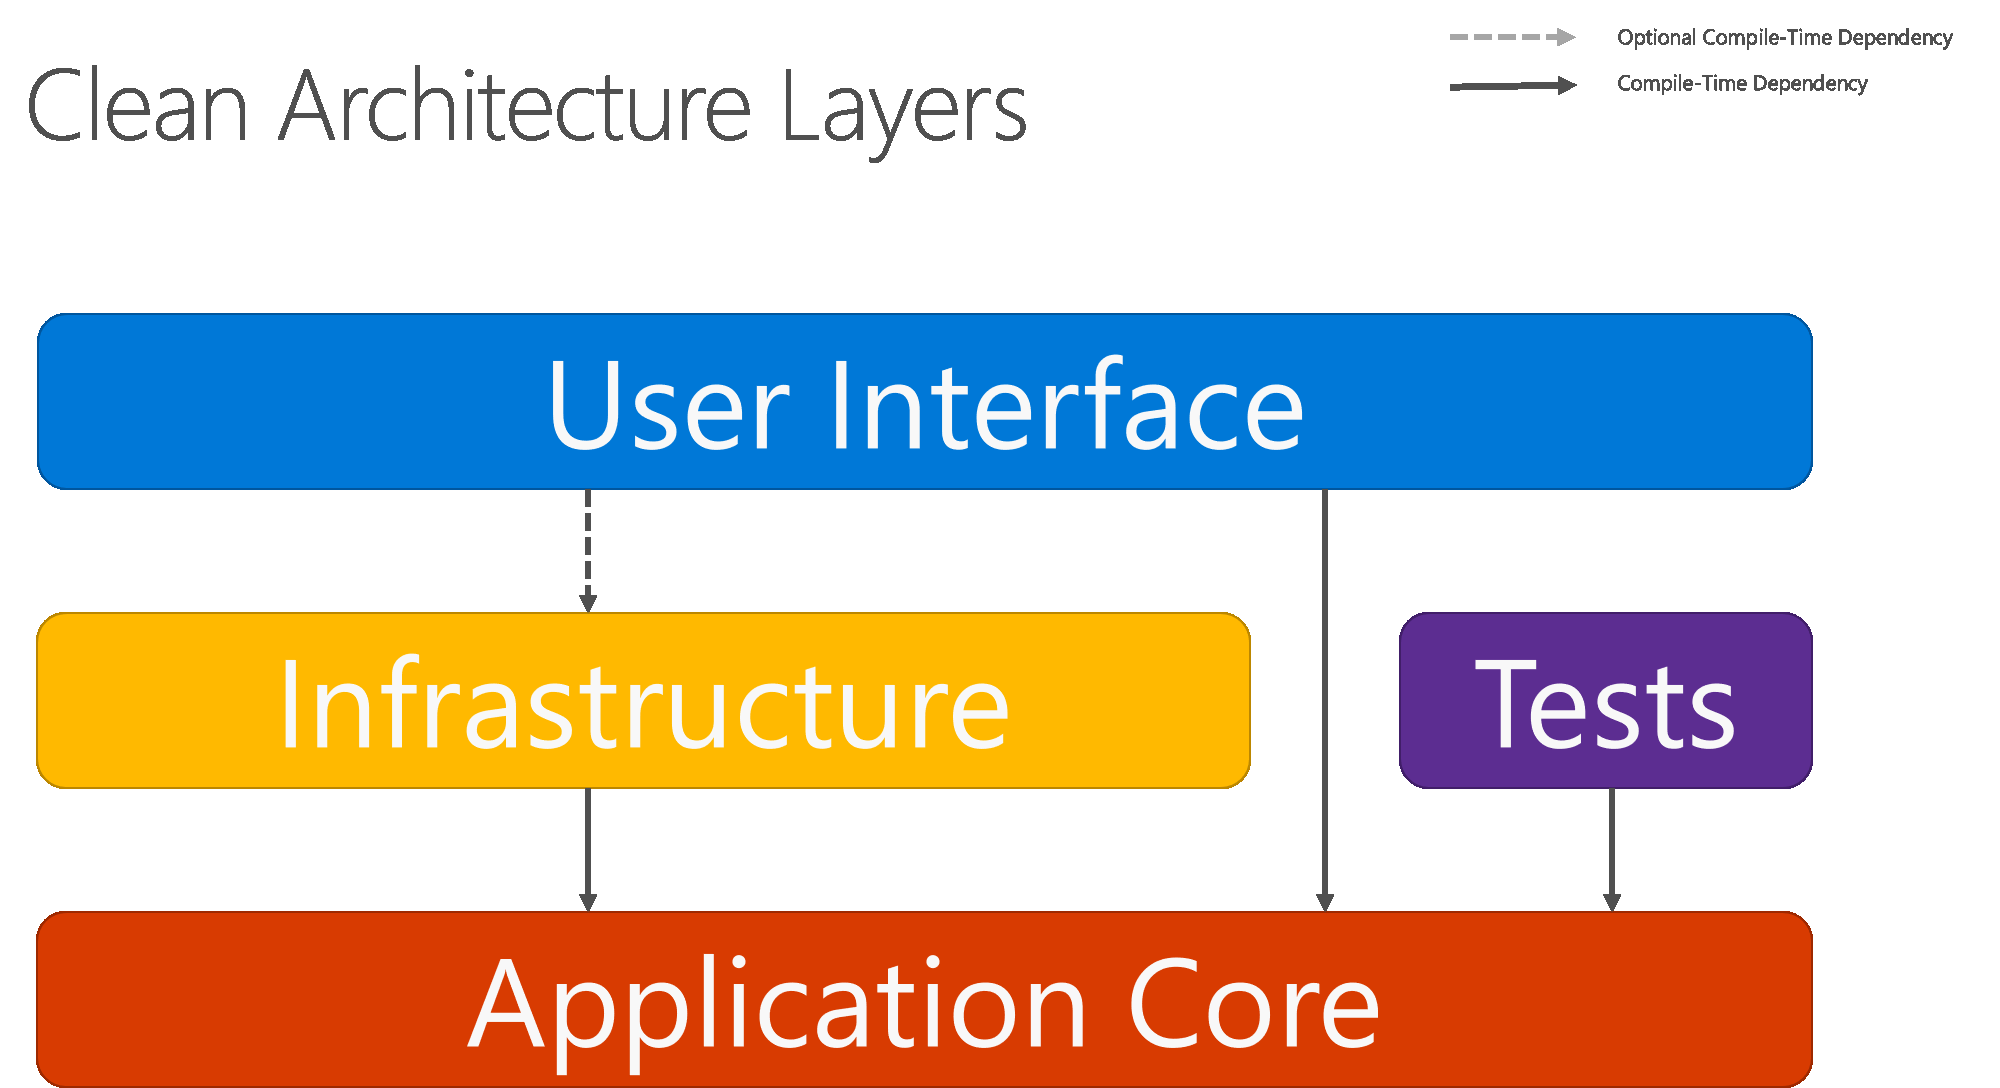 microsoft infrastructure diagram wiring for two way light switch uk common web application architectures docs figure 5 8 shows a more traditional horizontal layer that better reflects the dependency between ui and other layers